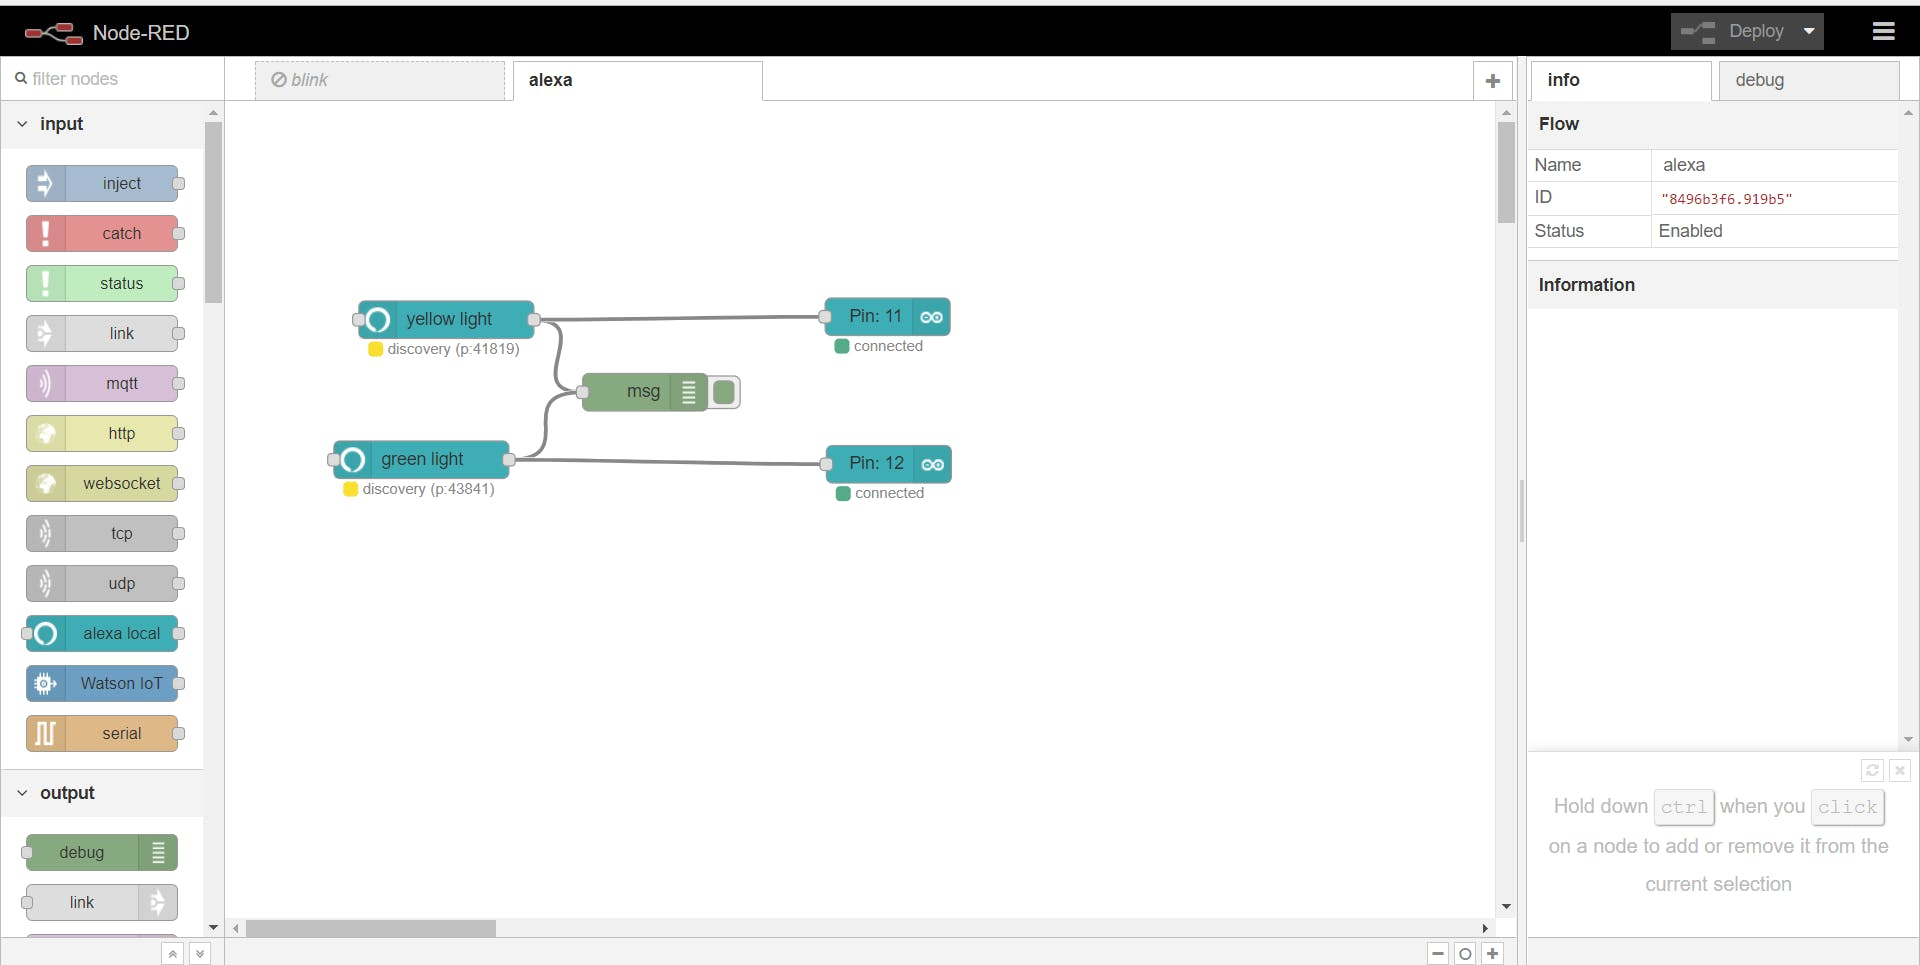 Node-RED flow with Alexa Local and Android nodes